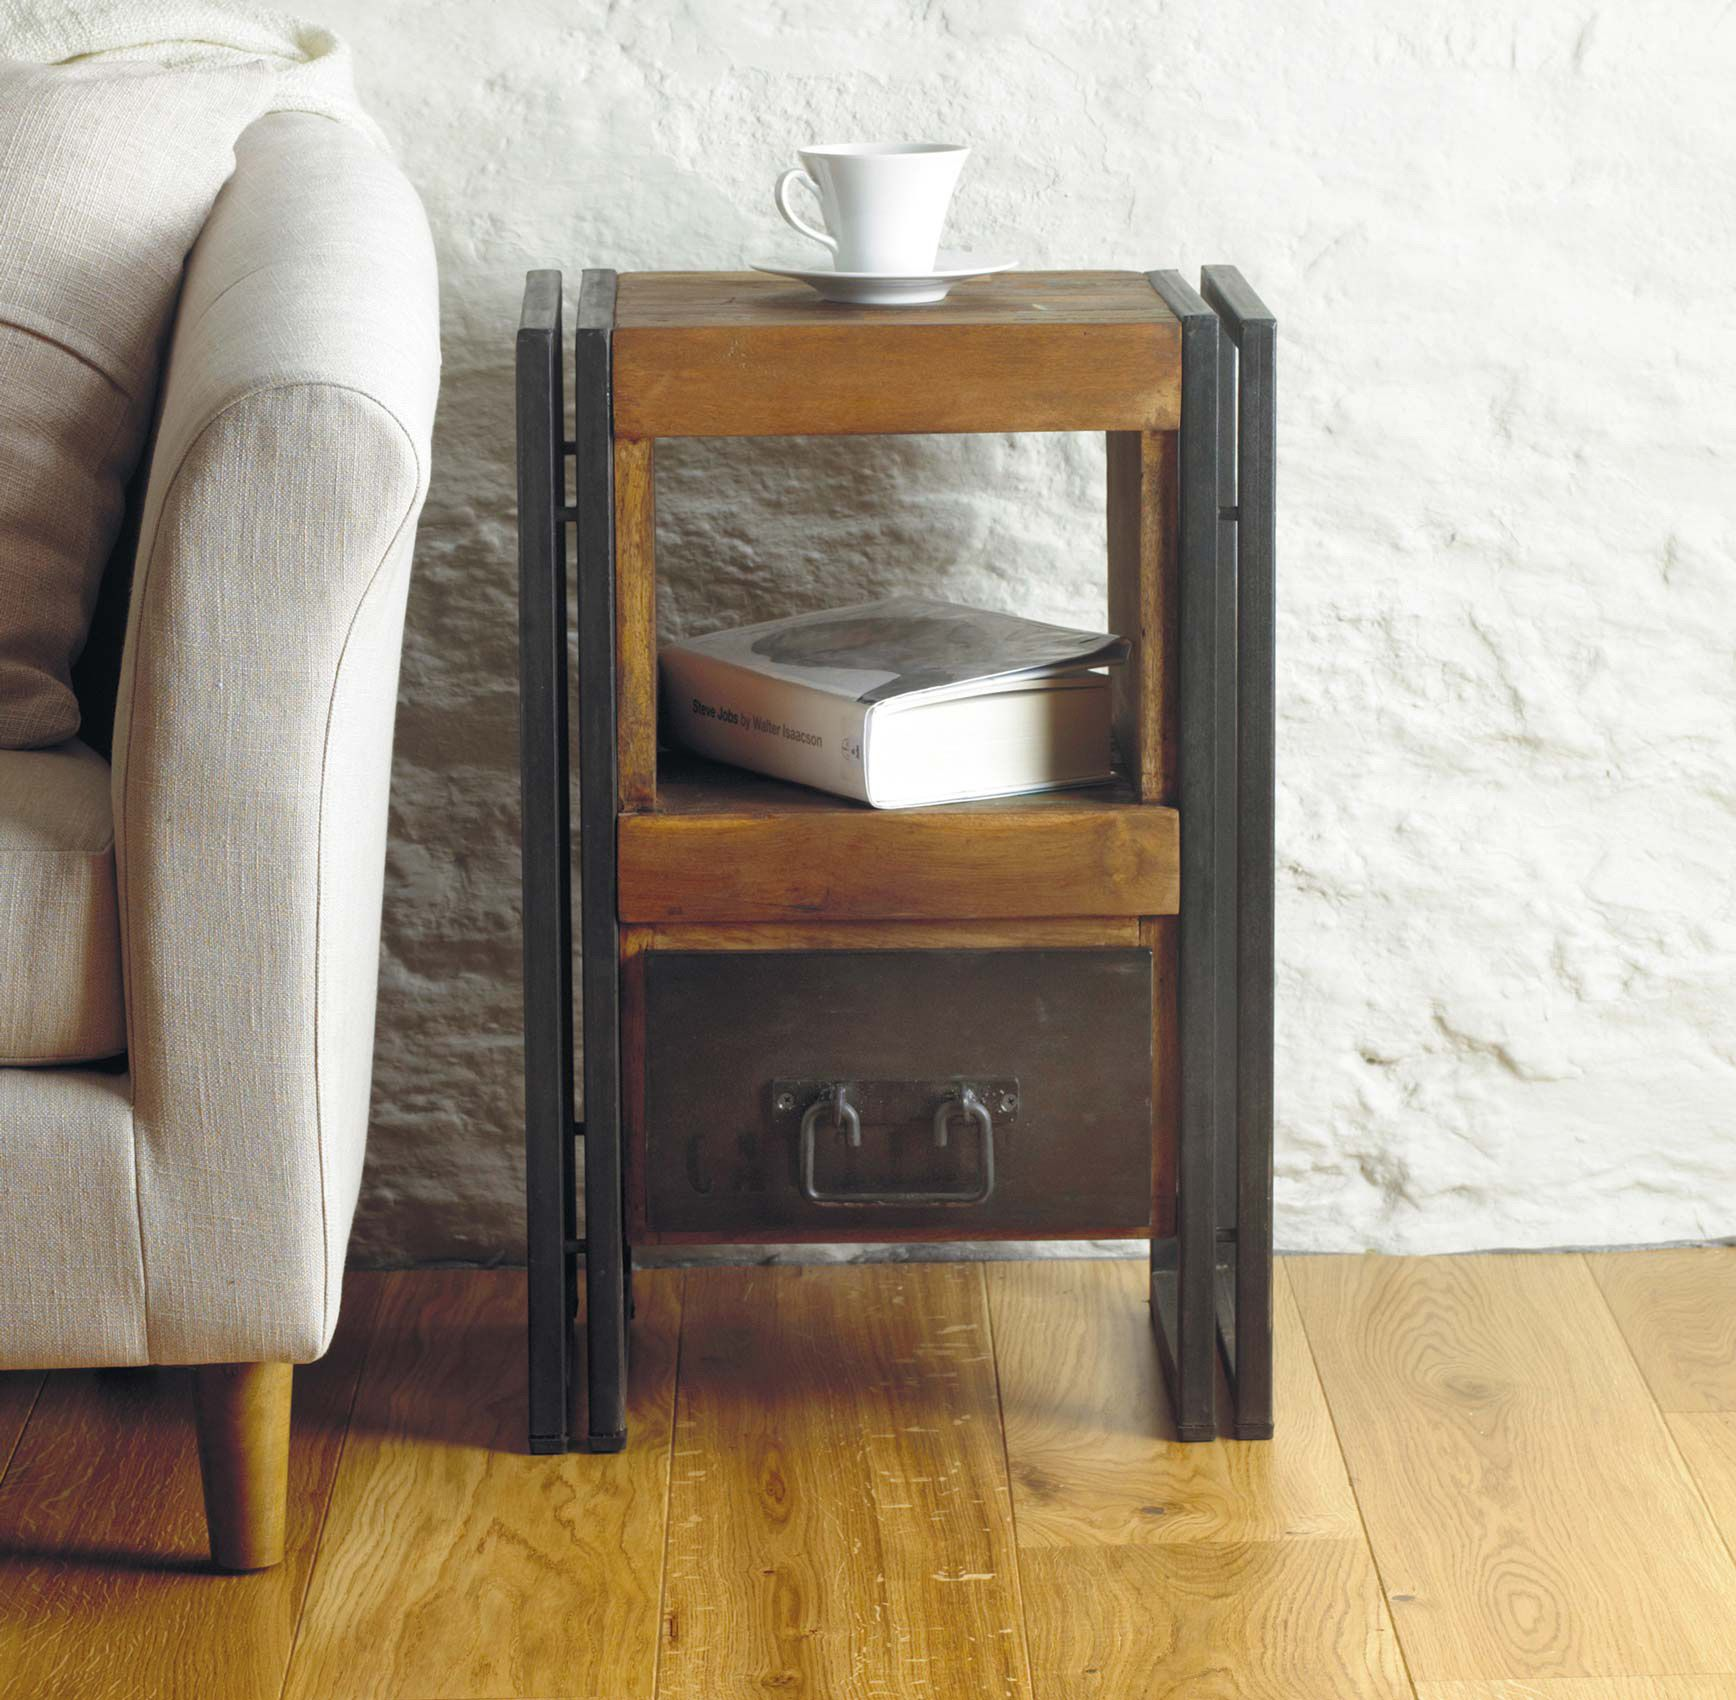 Quirky Bedside Tables industrial-chic-recycled-bedside-unit (1736×1700) | bedside